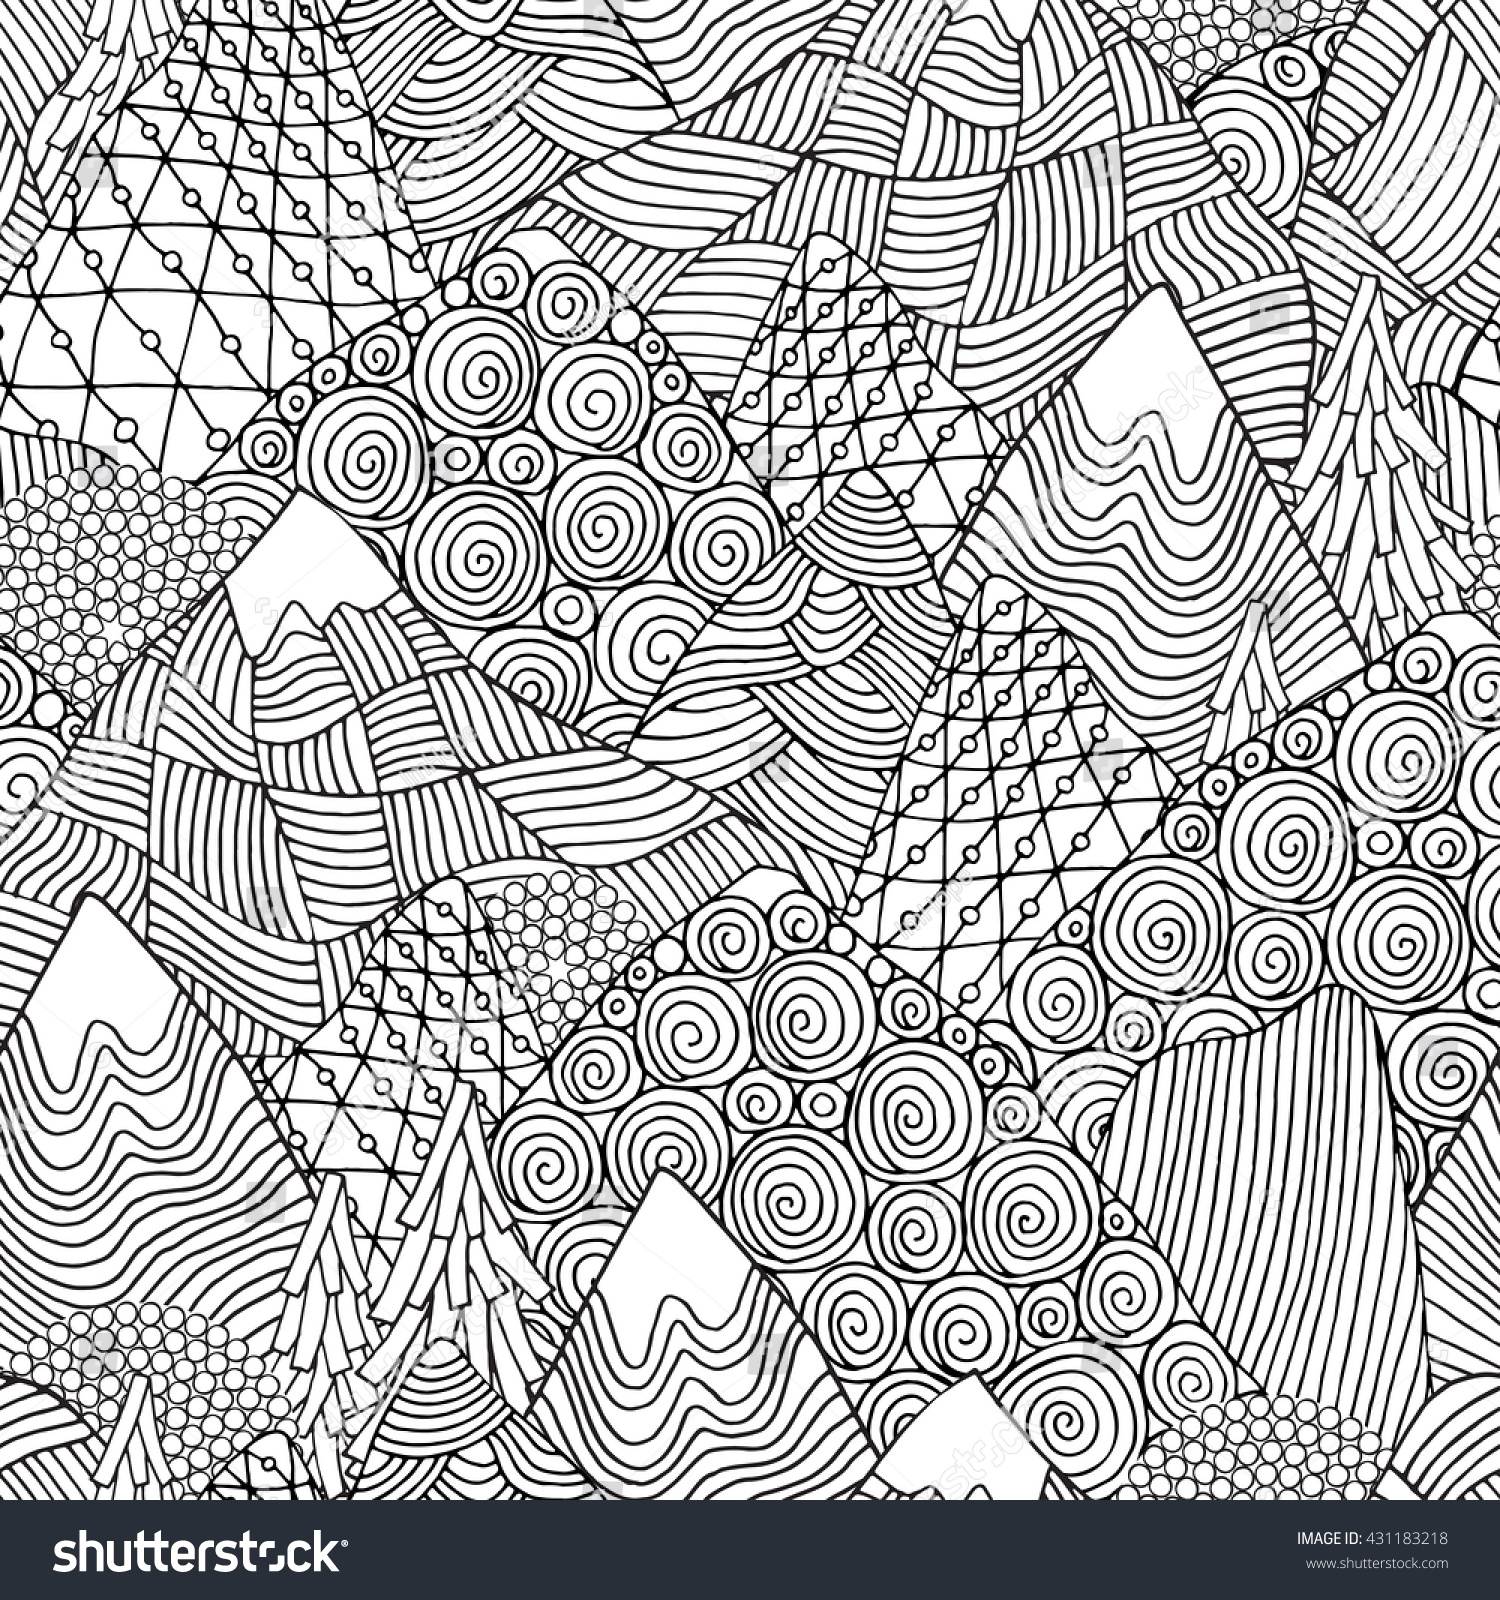 Free printable adult coloring pages snow caped mountain es for Snowy mountain coloring page